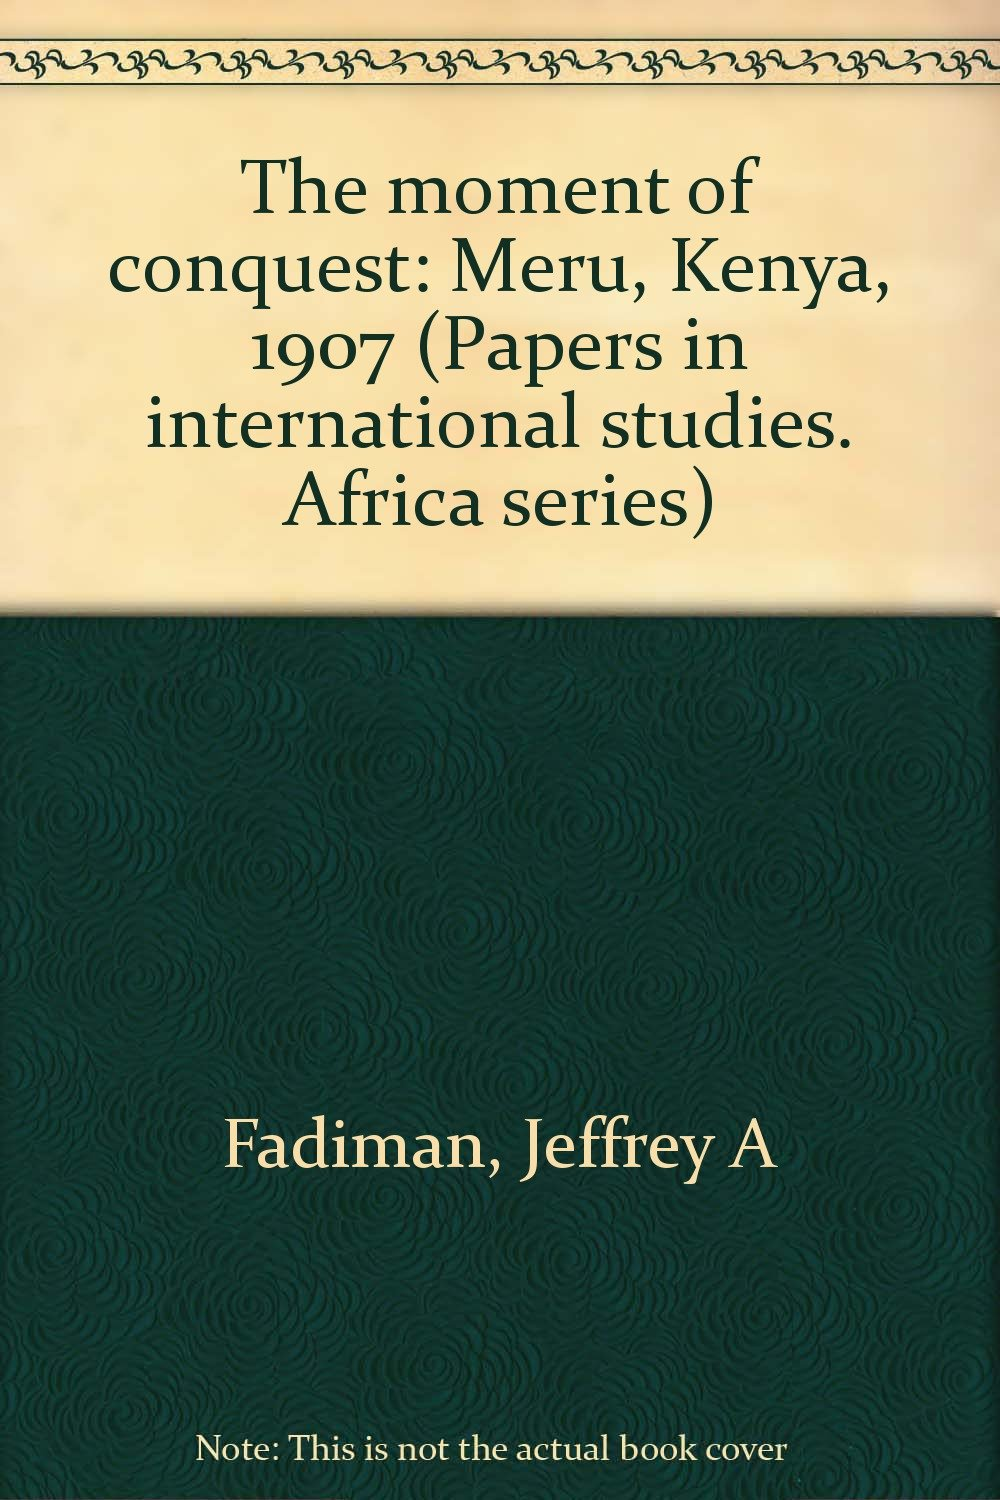 The moment of conquest: Meru, Kenya, 1907 (Papers in international studies : Africa series)